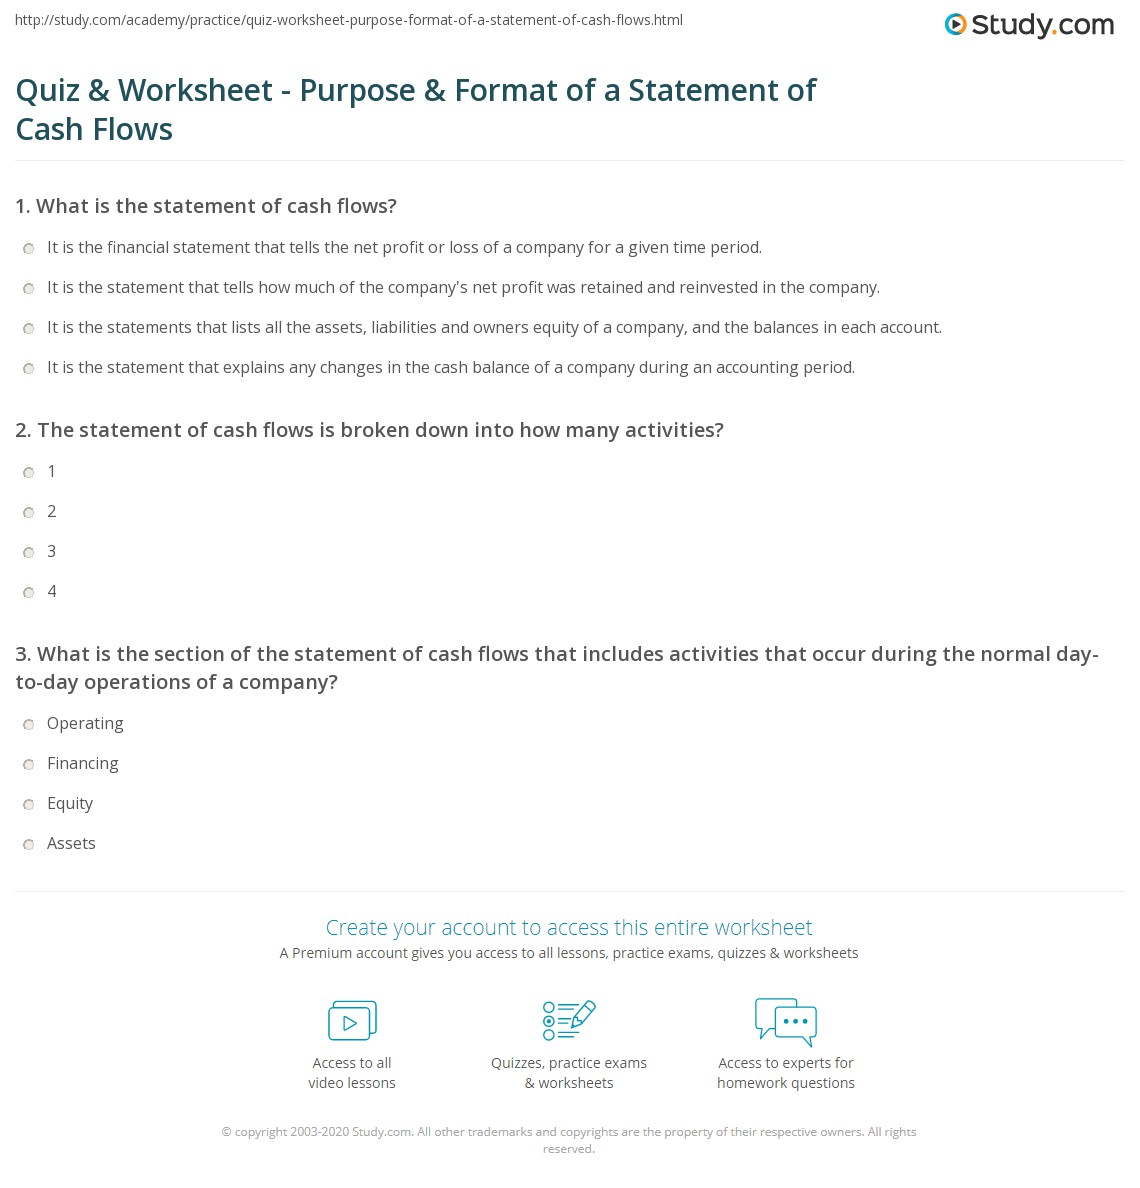 Quiz & Worksheet - Purpose & Format of a Statement of Cash Flows ...